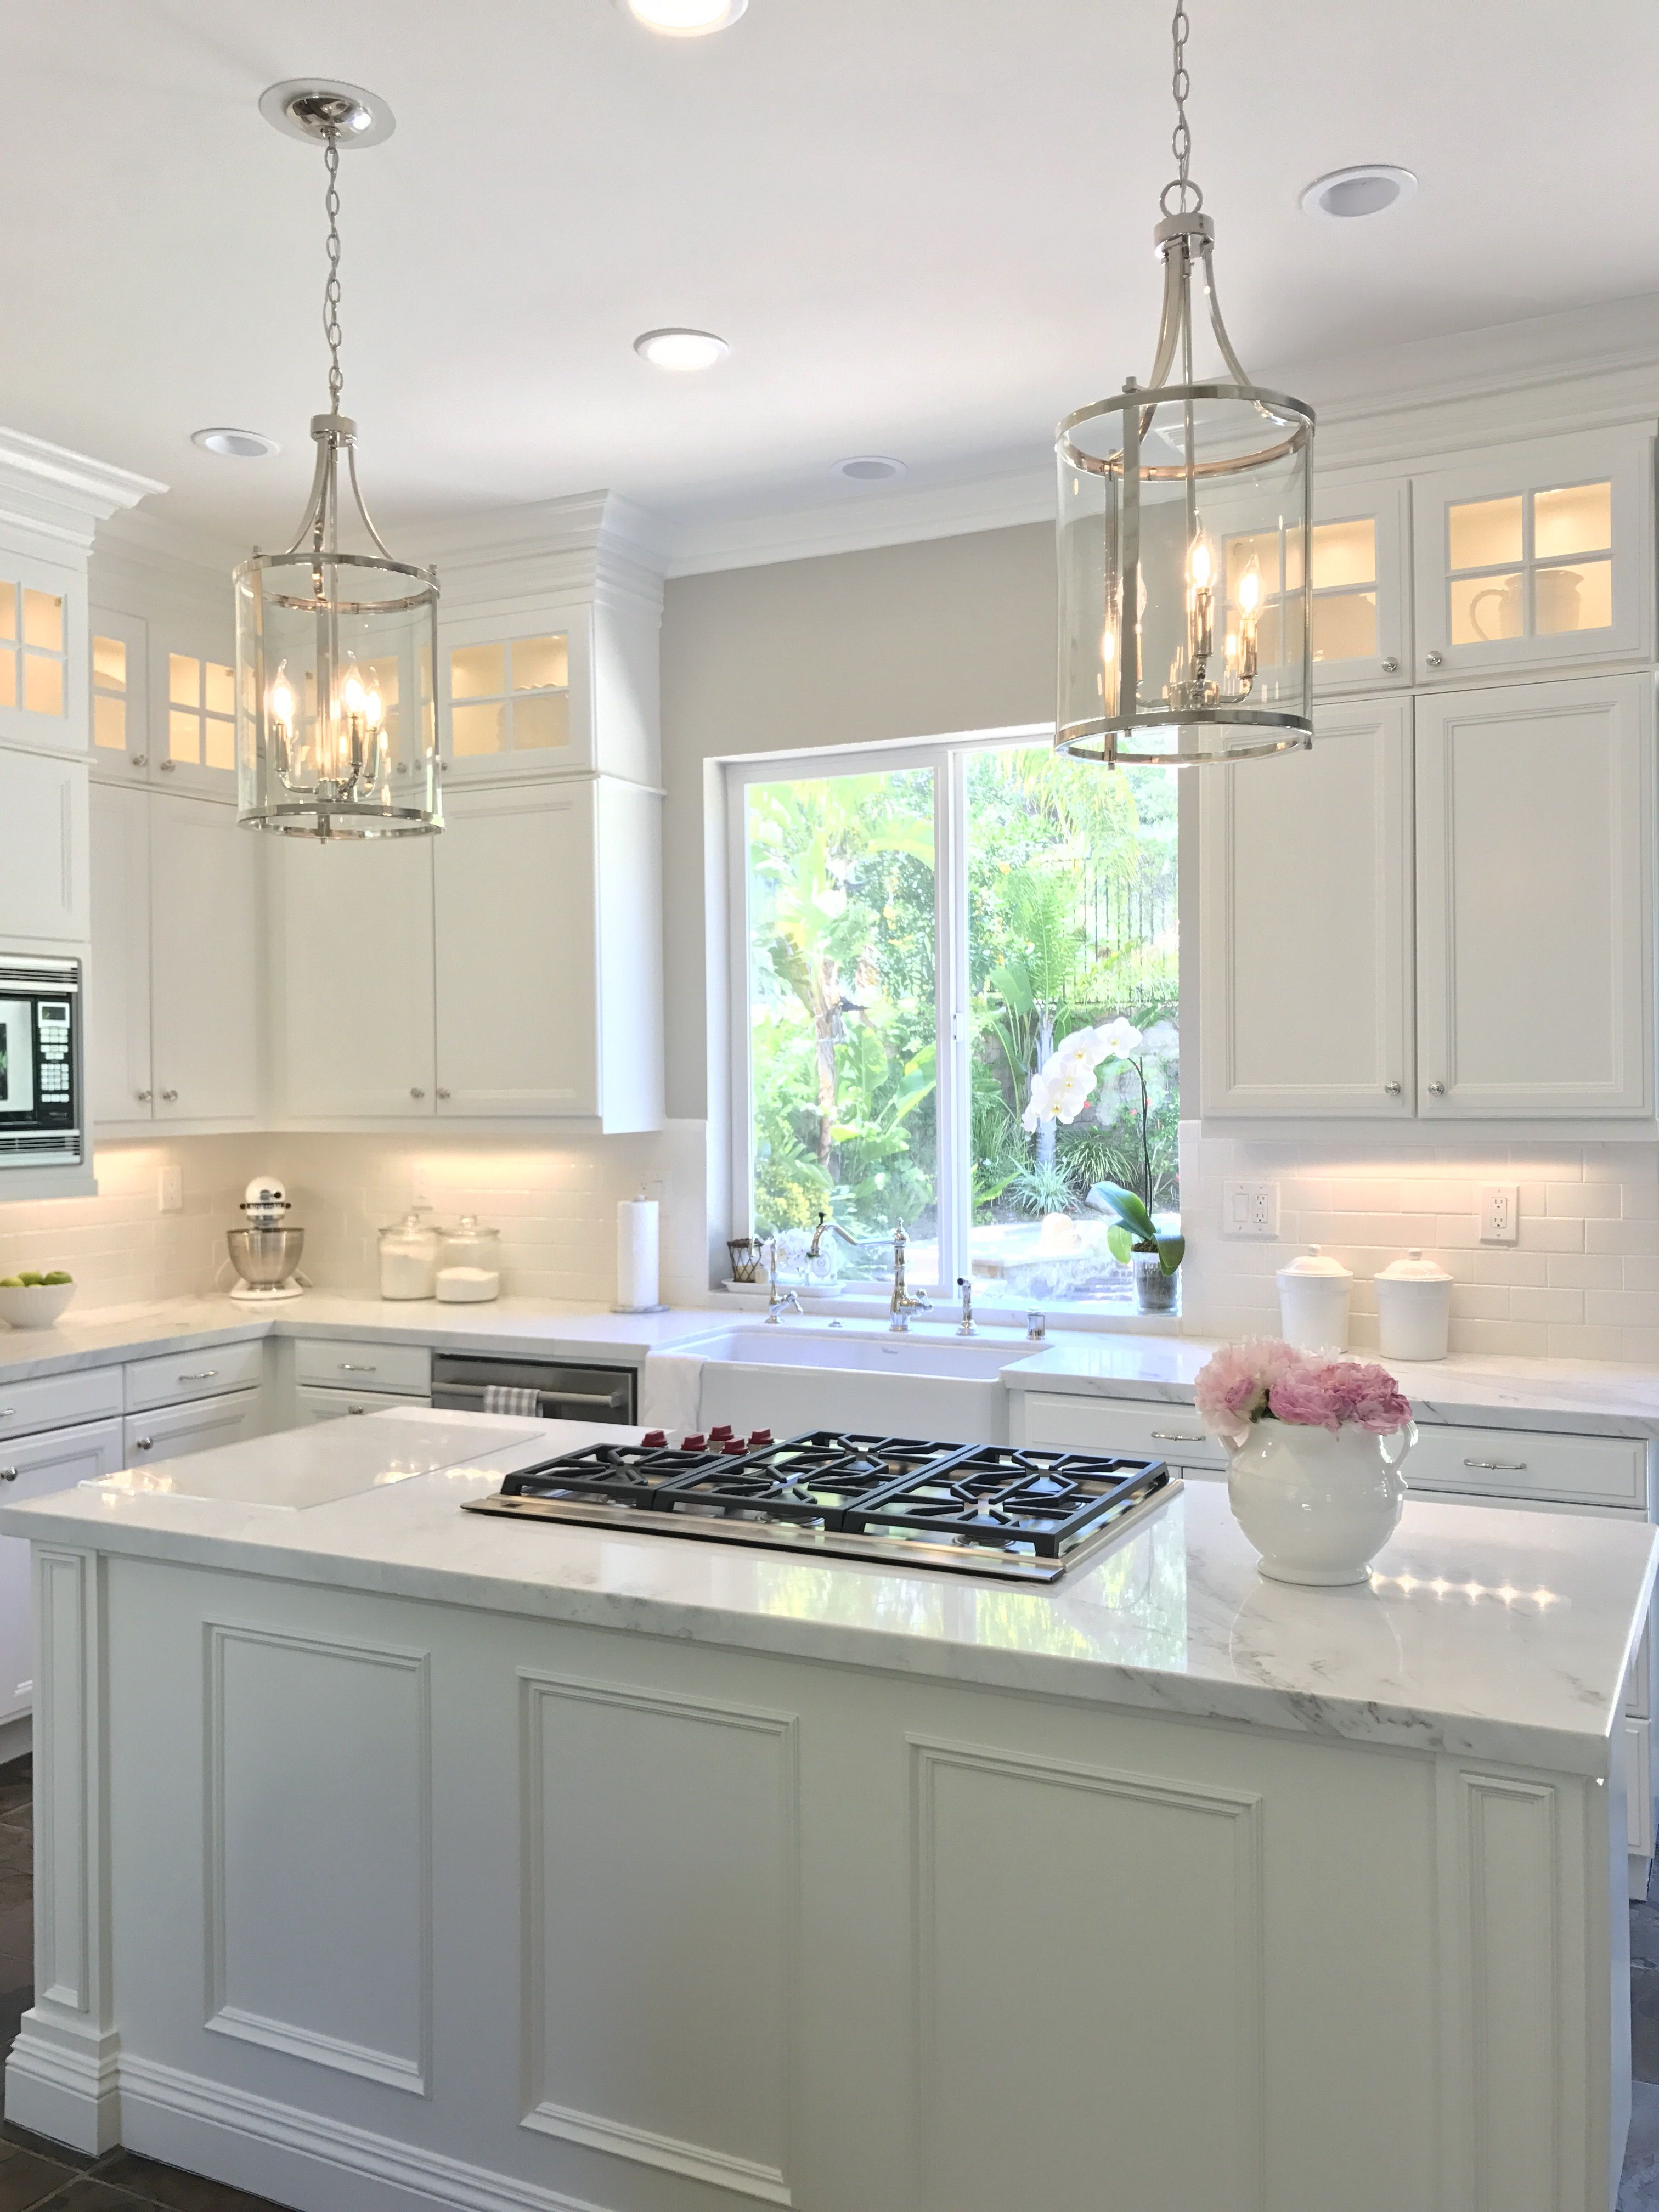 backsplash for white kitchen cabinets white kitchen with danby marble and subway tile backsplash with small cabinets add kitchen 3379